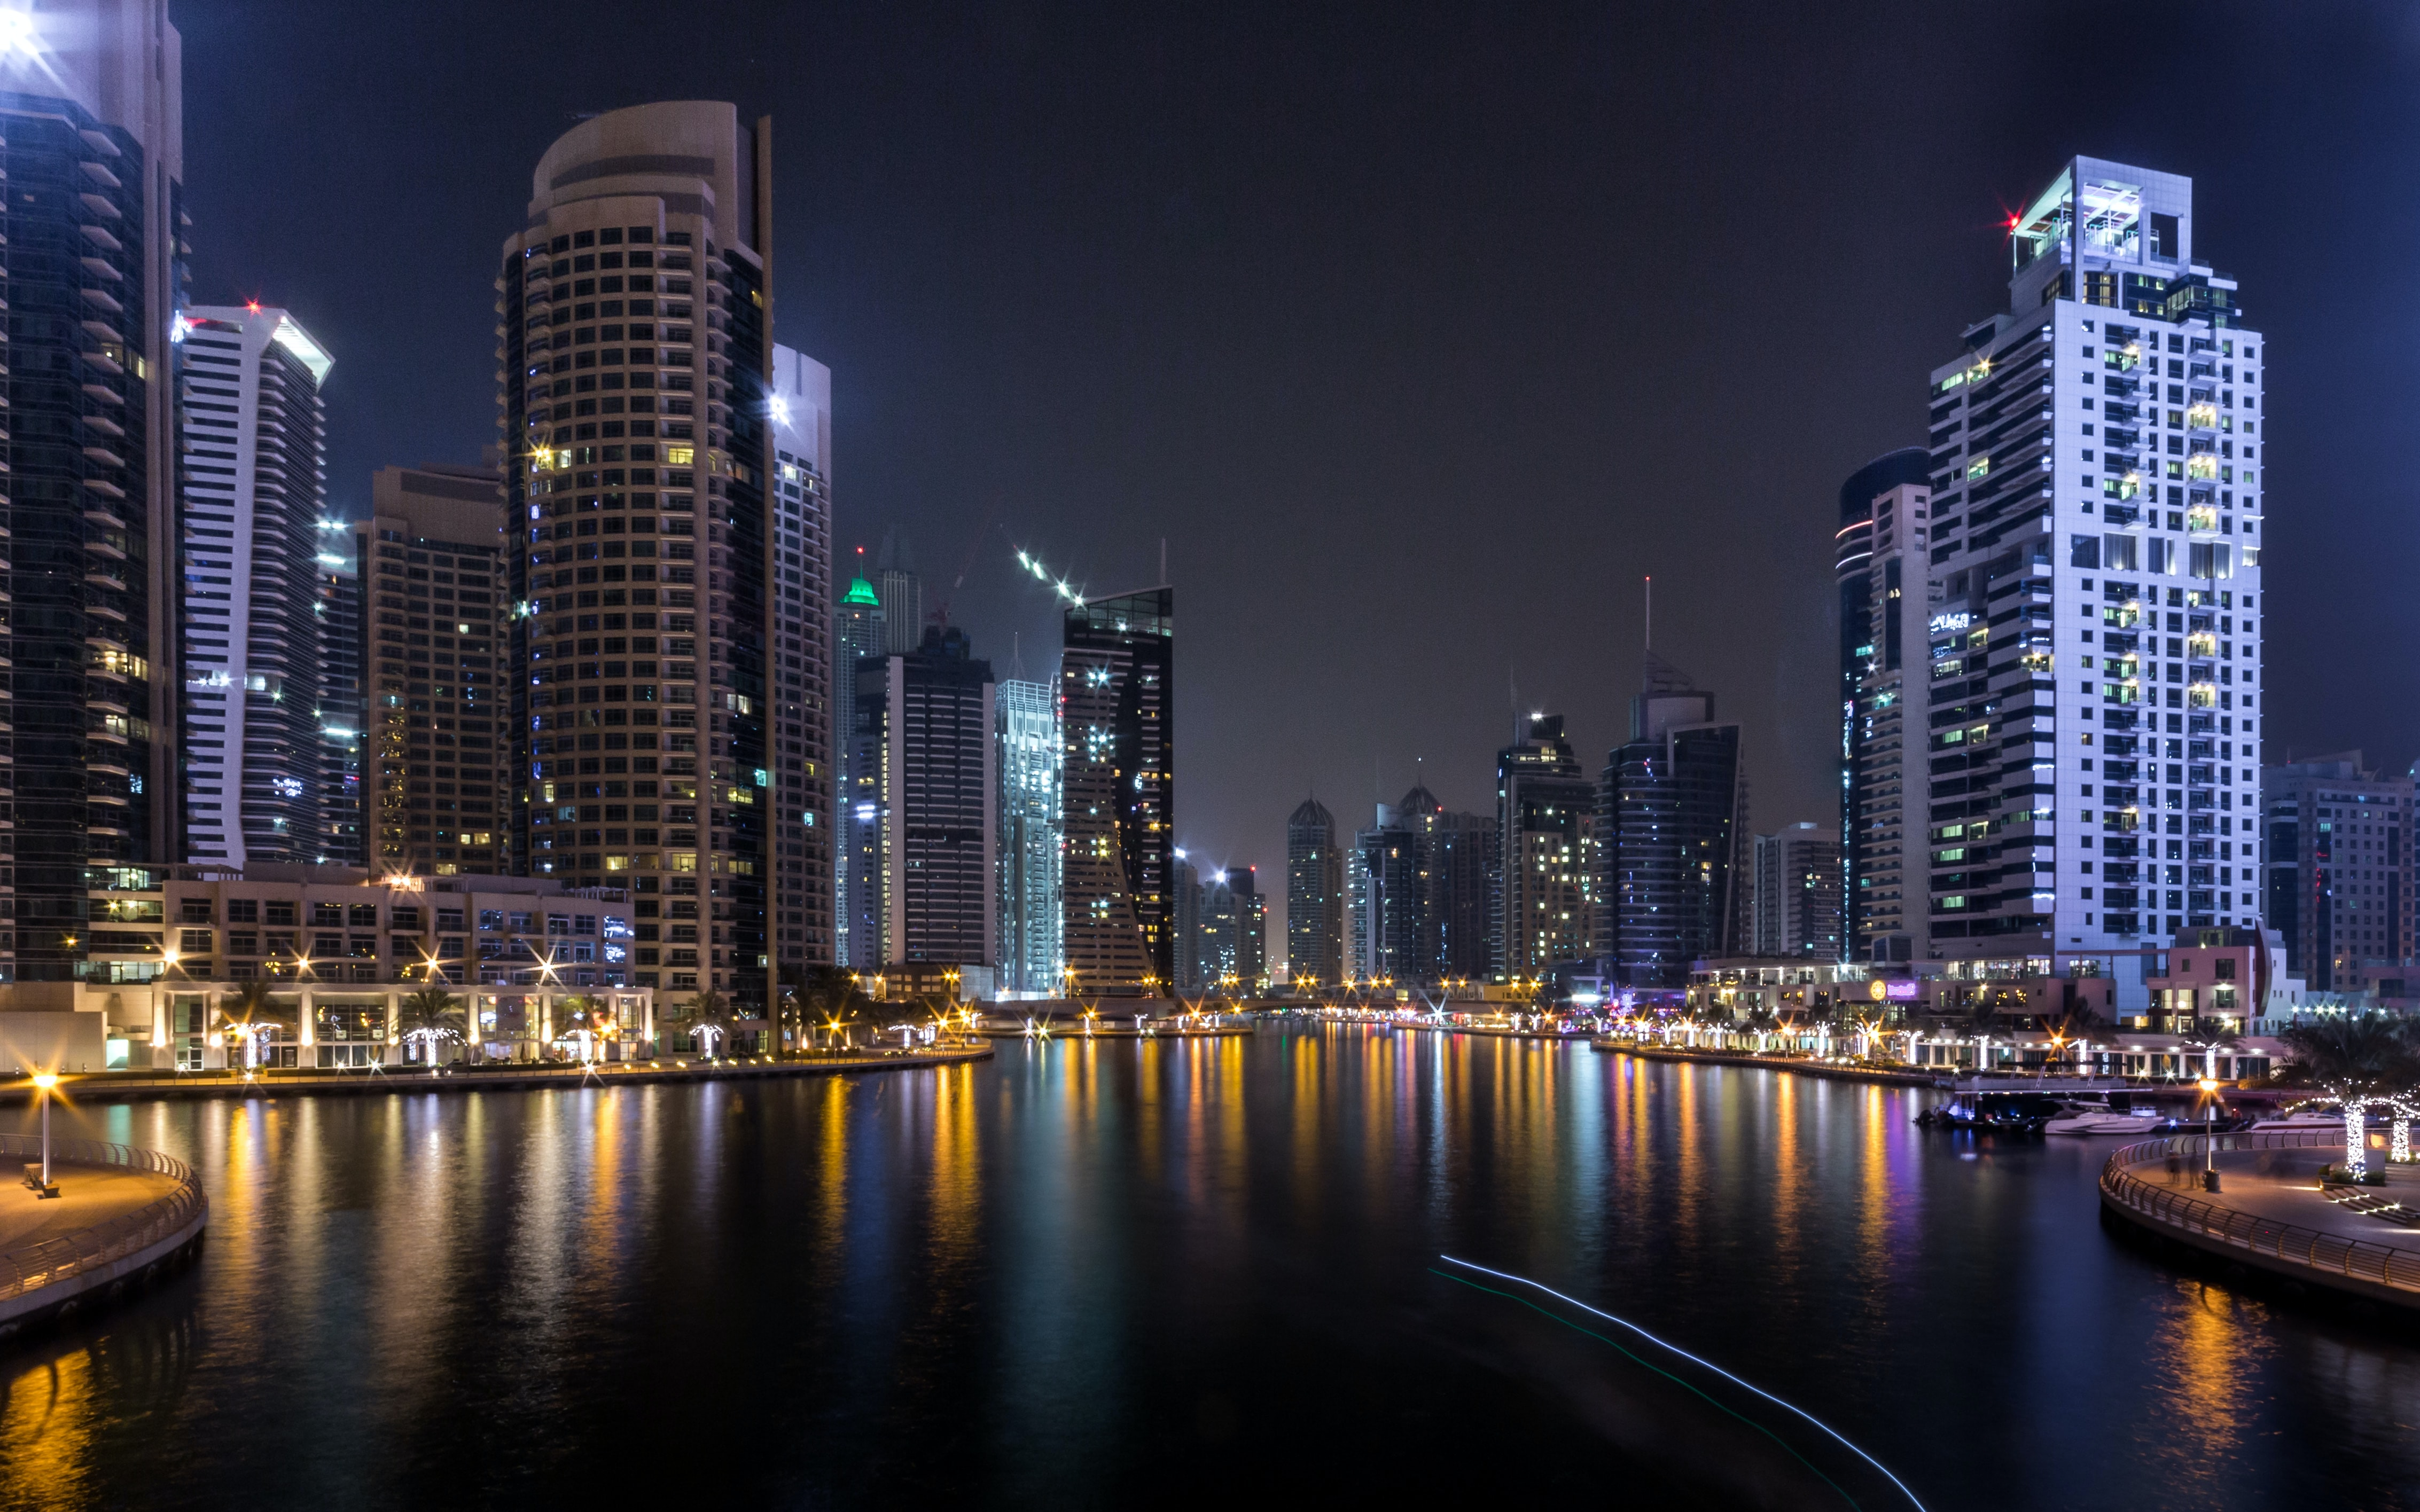 lighted city buildings beside body of water